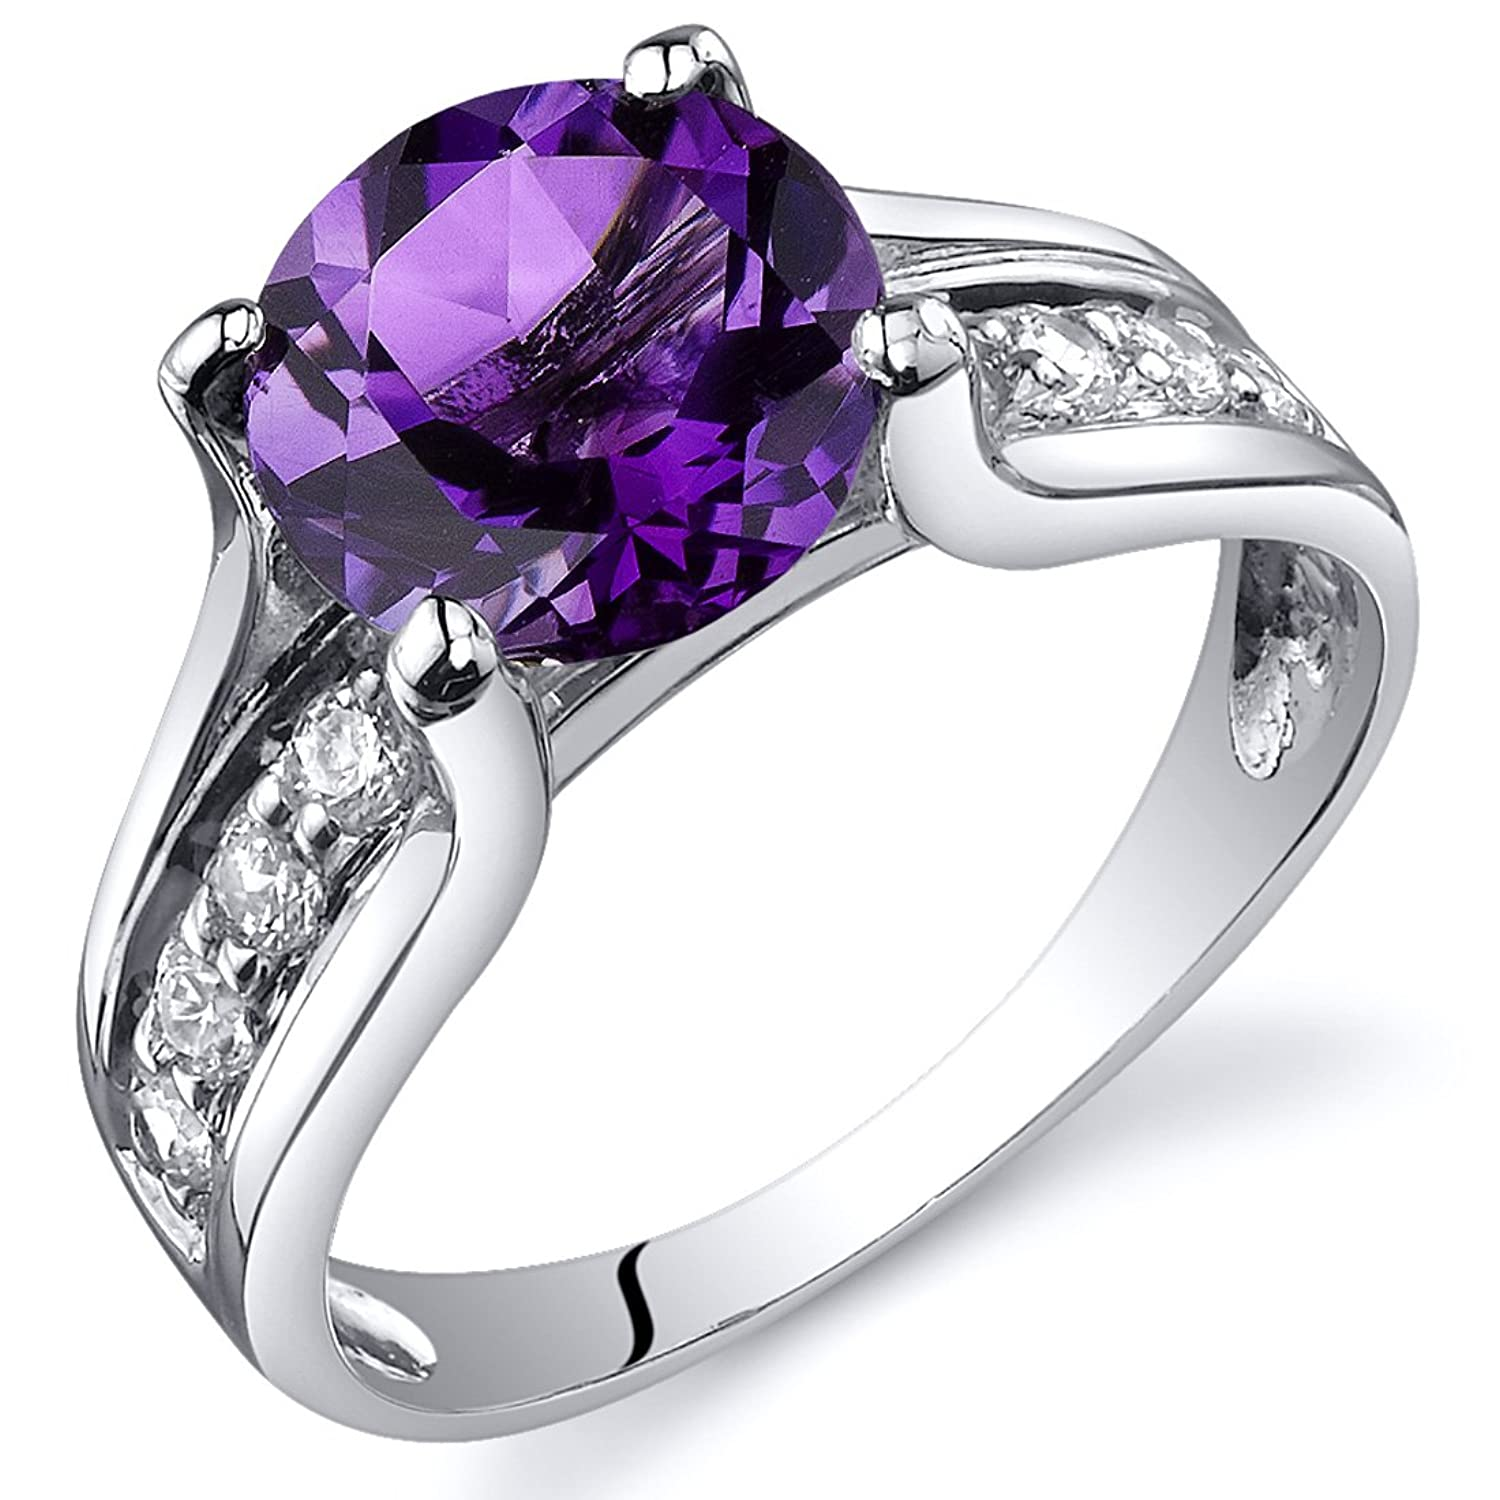 Amazon: Amethyst Solitaire Style Ring Sterling Silver Rhodium Nickel  Finish 175 Carats Sizes 5 To 9: Jewelry